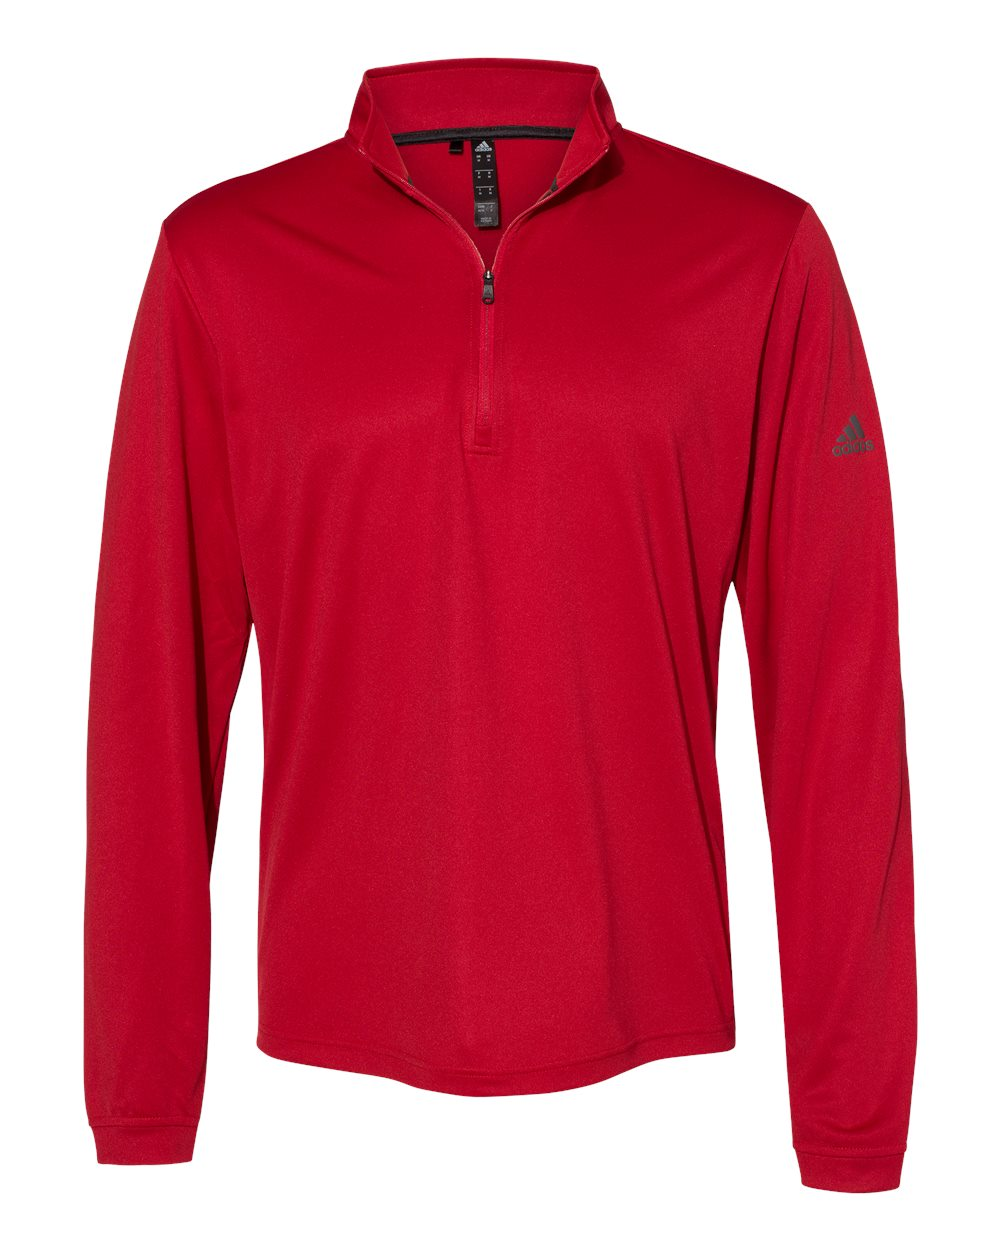 Adidas-Mens-Lightweight-Quarter-Zip-Pullover-Shirt-polyester-A401-up-to-4XL miniature 21